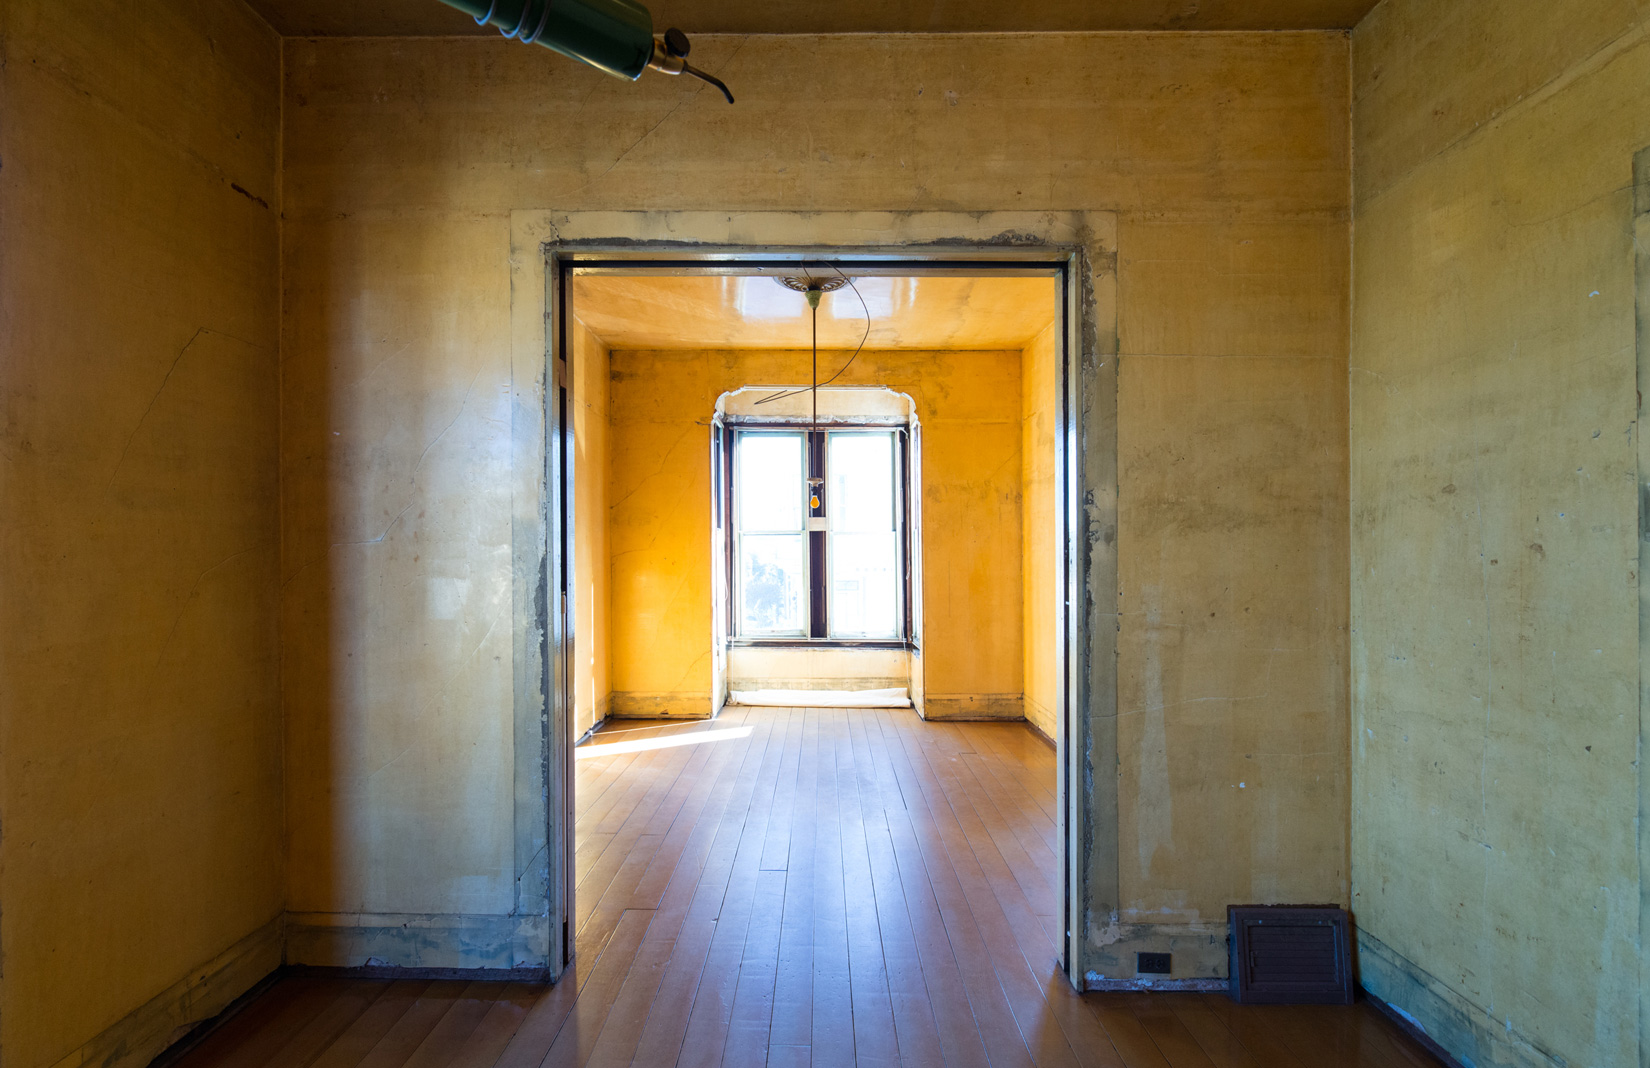 500 Capp Street, yellow room. Courtesy of 500 Capp Street Foundation